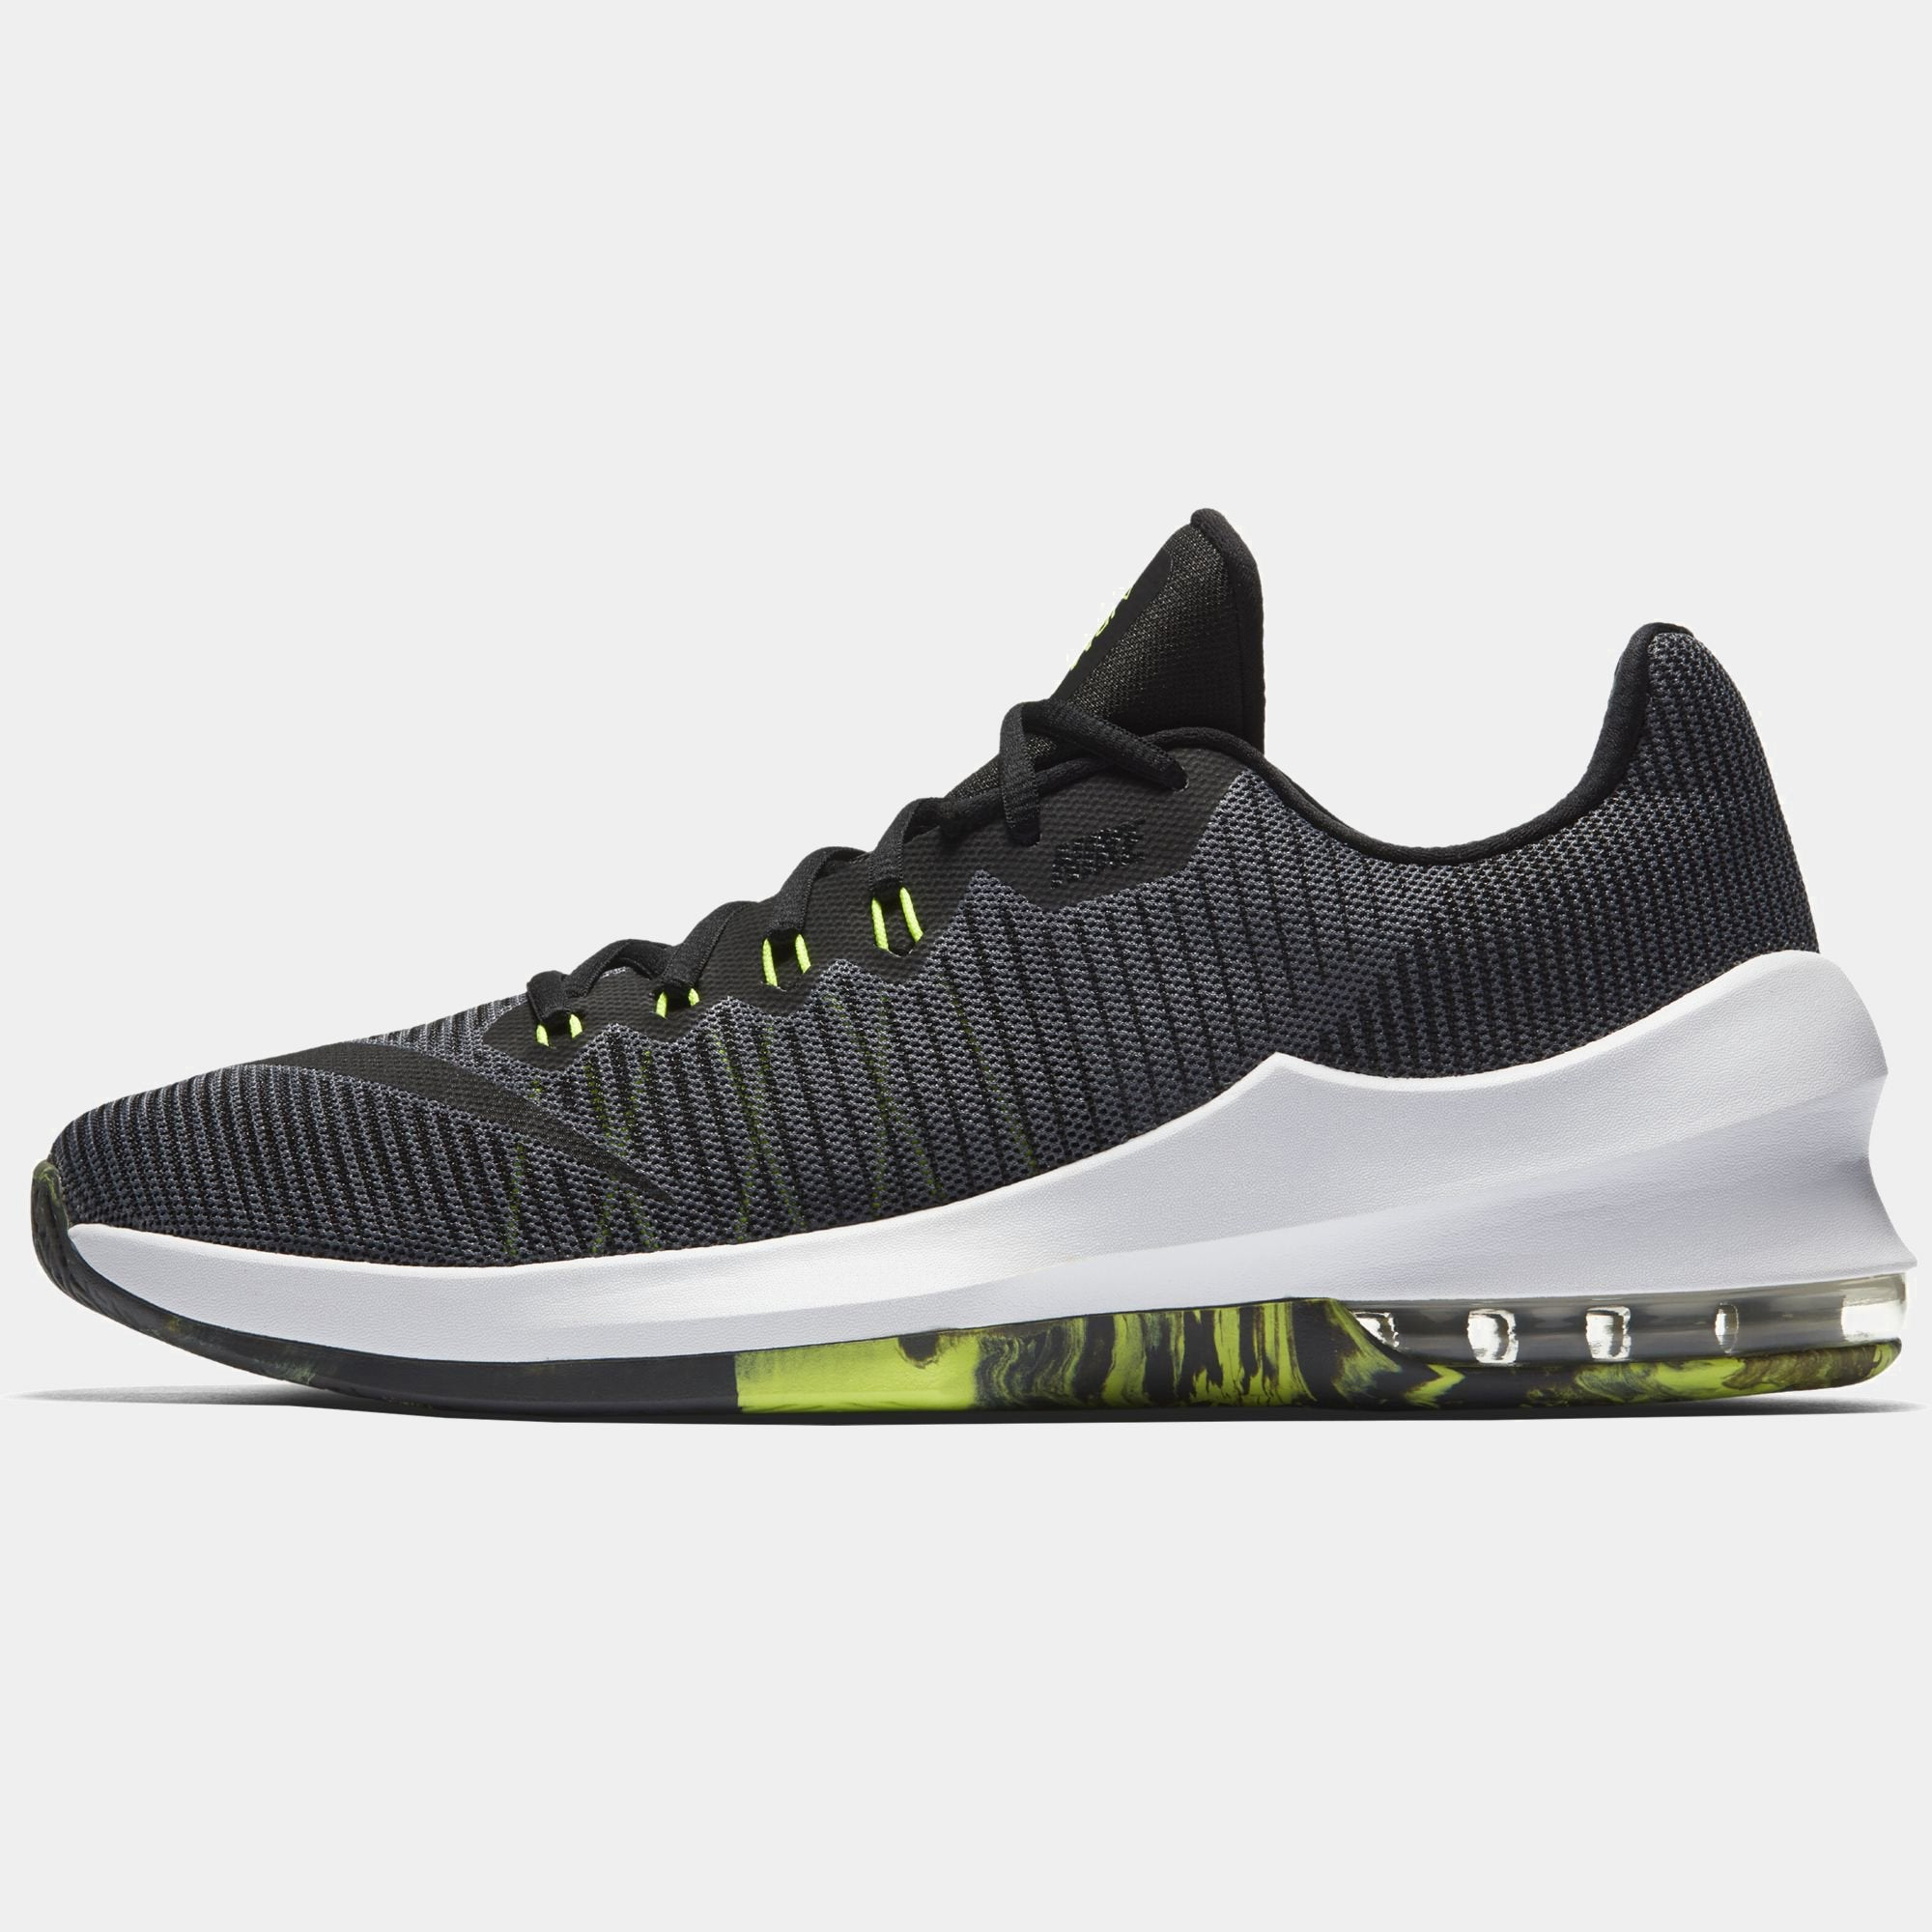 e2aec71d37 ... promo code for nike air max infuriate 2 low basketball shoe branded feet  5183d 63736